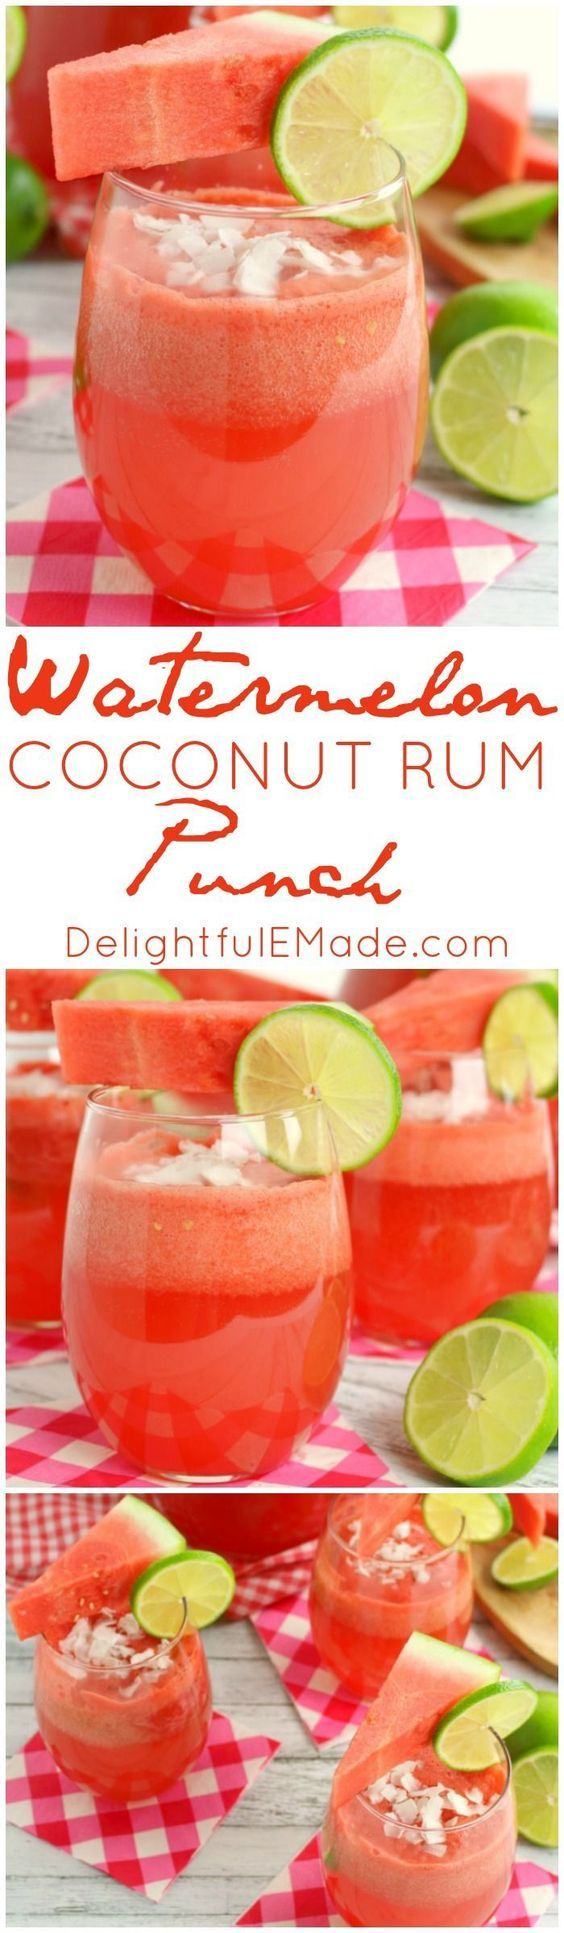 This amazing coconut rum punch is the quintessential summer cocktail! Made with fresh watermelon and coconut rum, this simple rum punch recipe comes together in moments. Perfect for sipping poolside or serving at your next summer soiree!